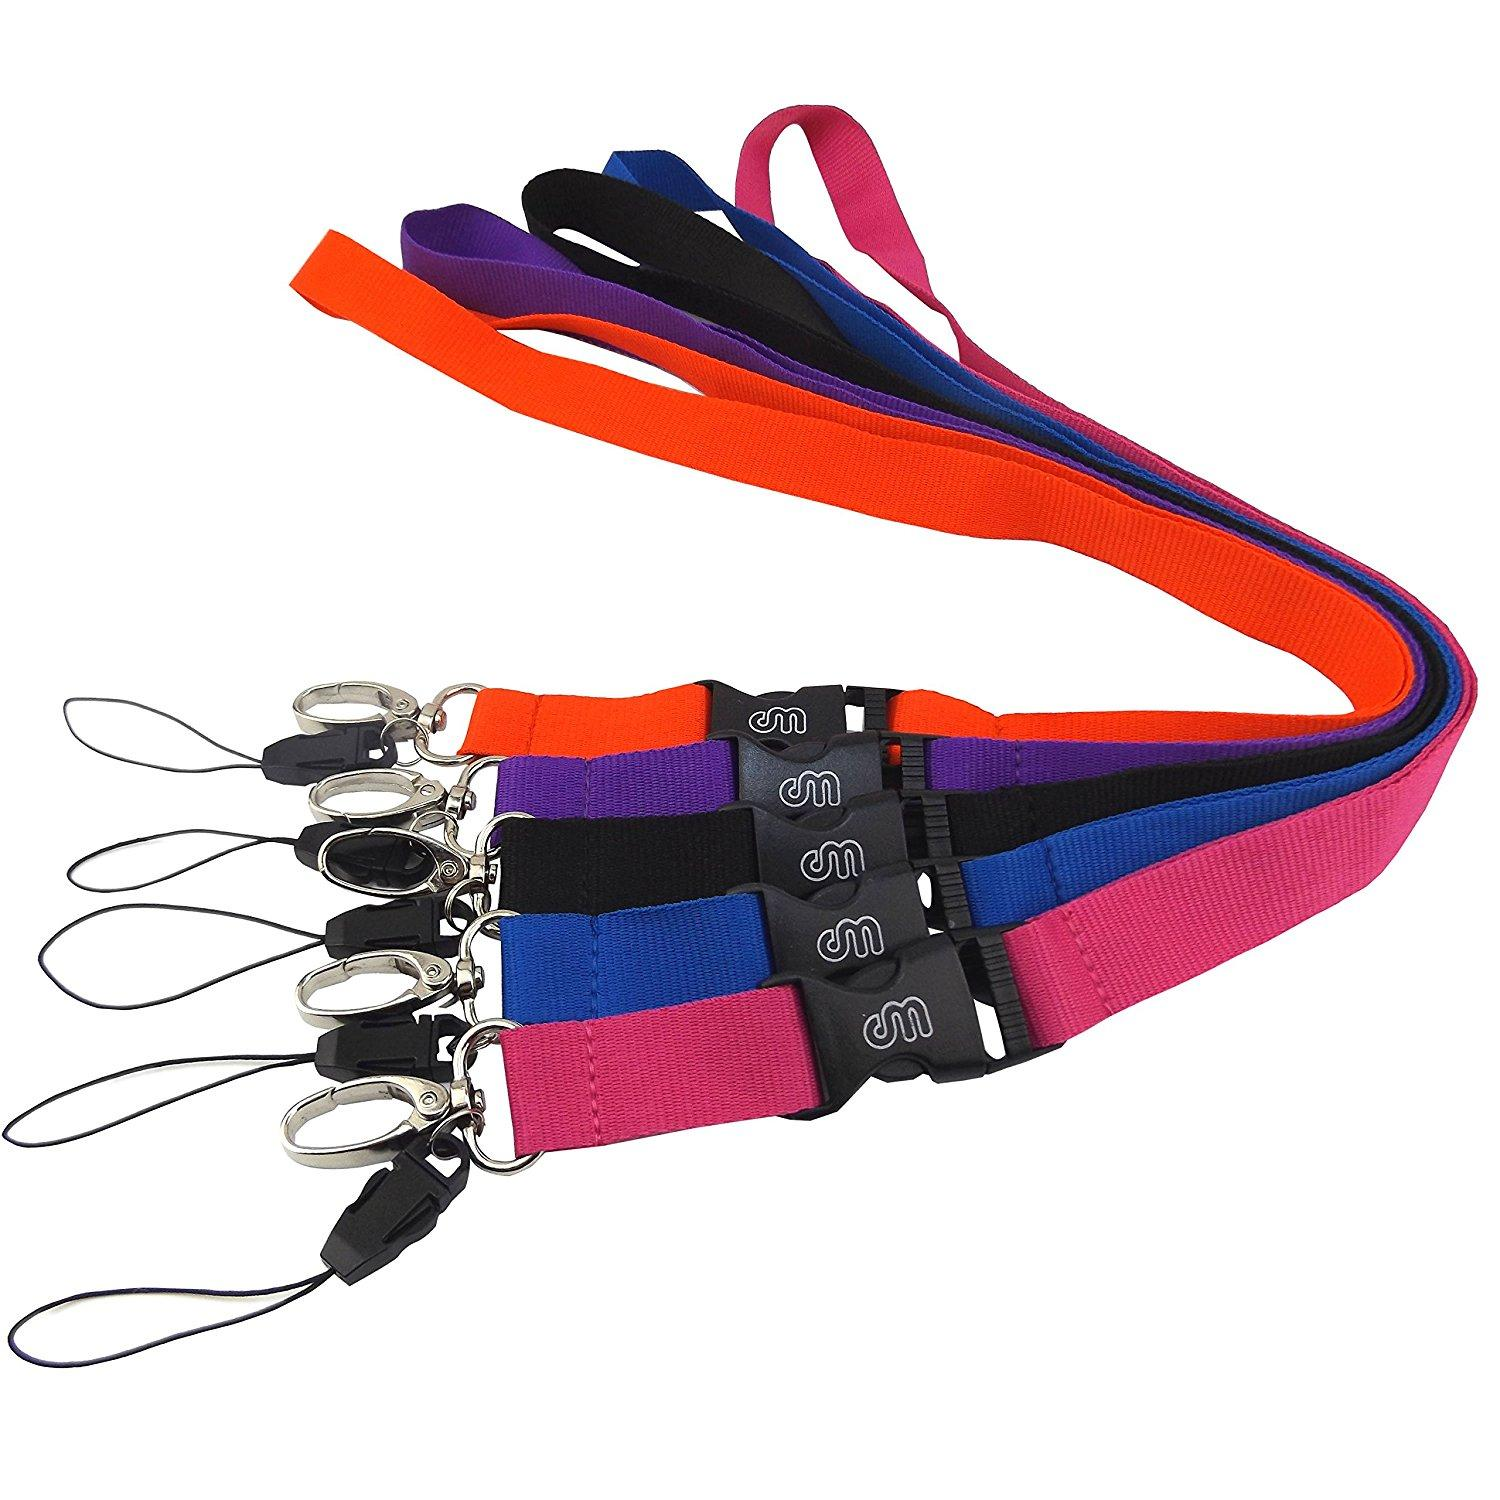 office lanyard polyester with oval clasp detachable buckle for